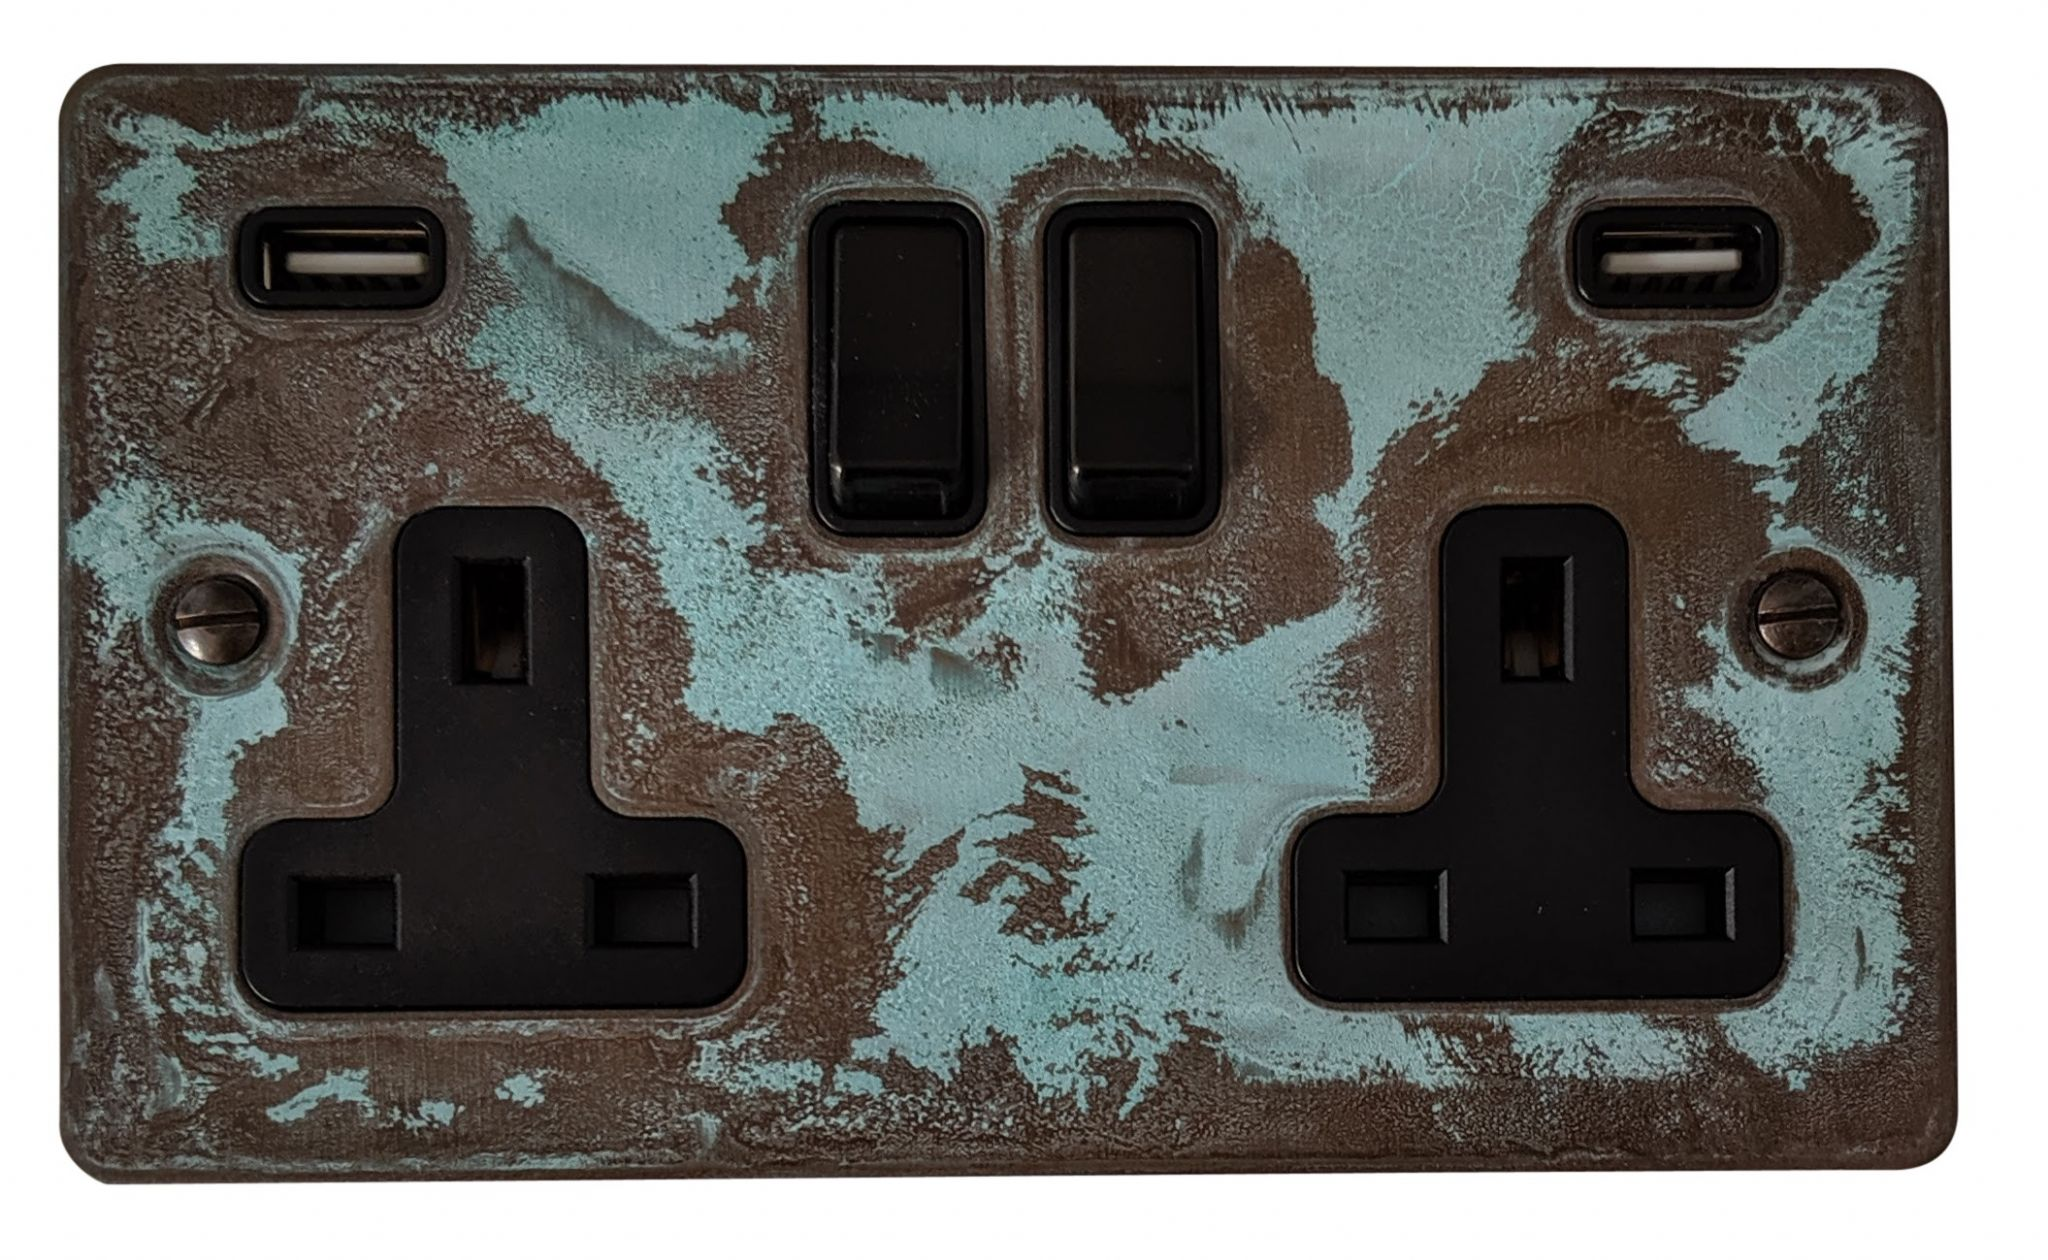 G&H FV910B Flat Plate Verdigris 2 Gang Double 13A Switched Plug Socket 2.1A USB